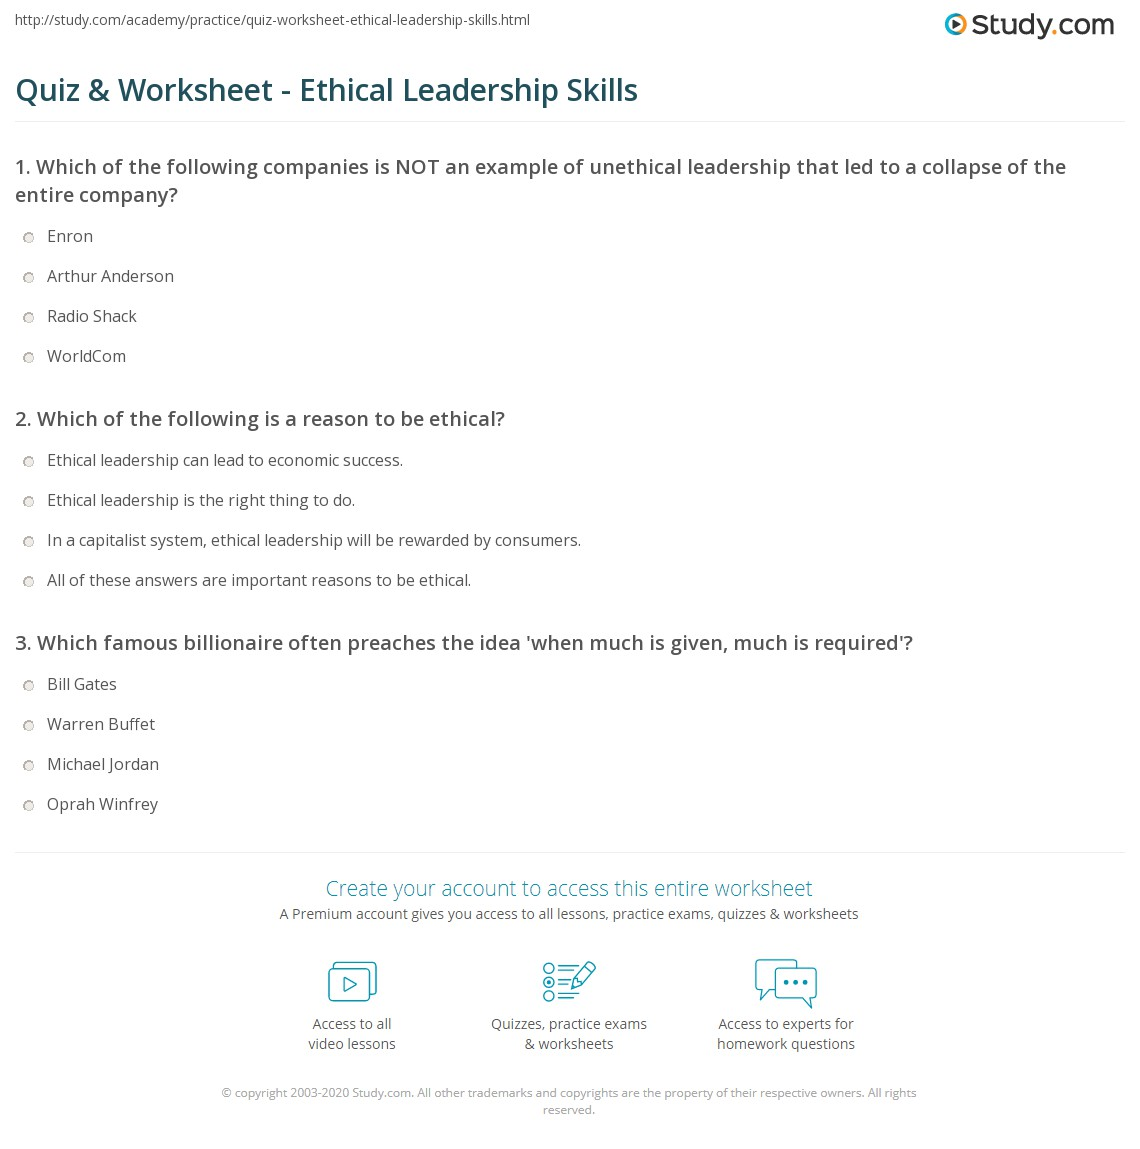 quiz worksheet ethical leadership skills com print the importance of ethical leadership skills worksheet